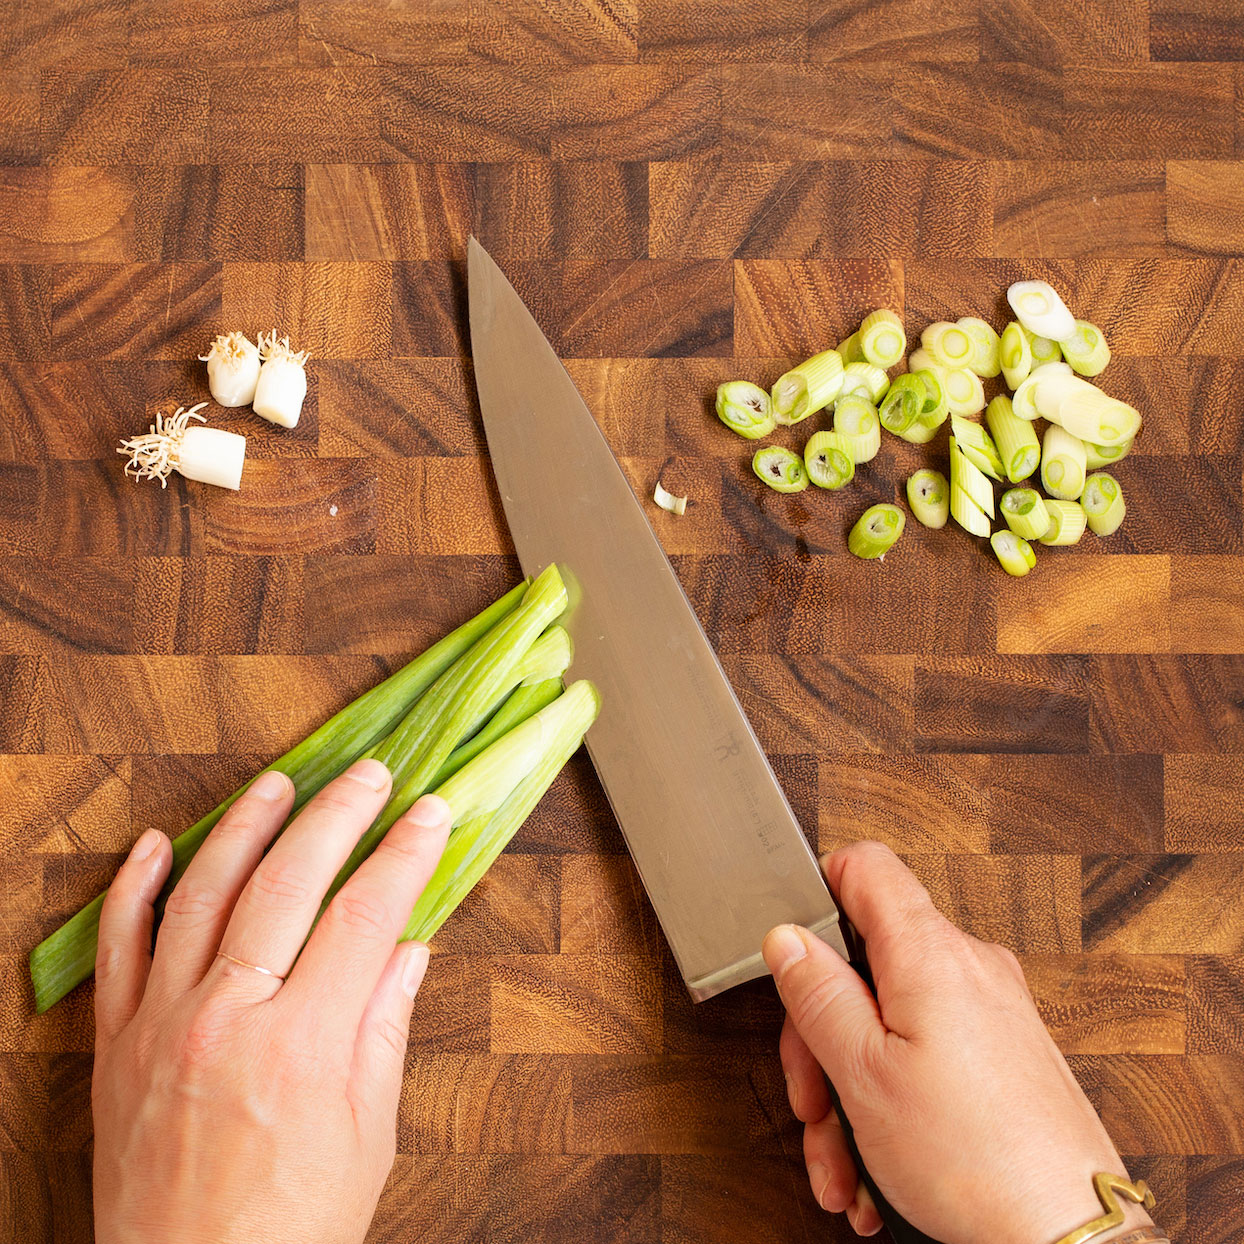 cutting green onions on the bias (diagonally) on a wooden cutting board